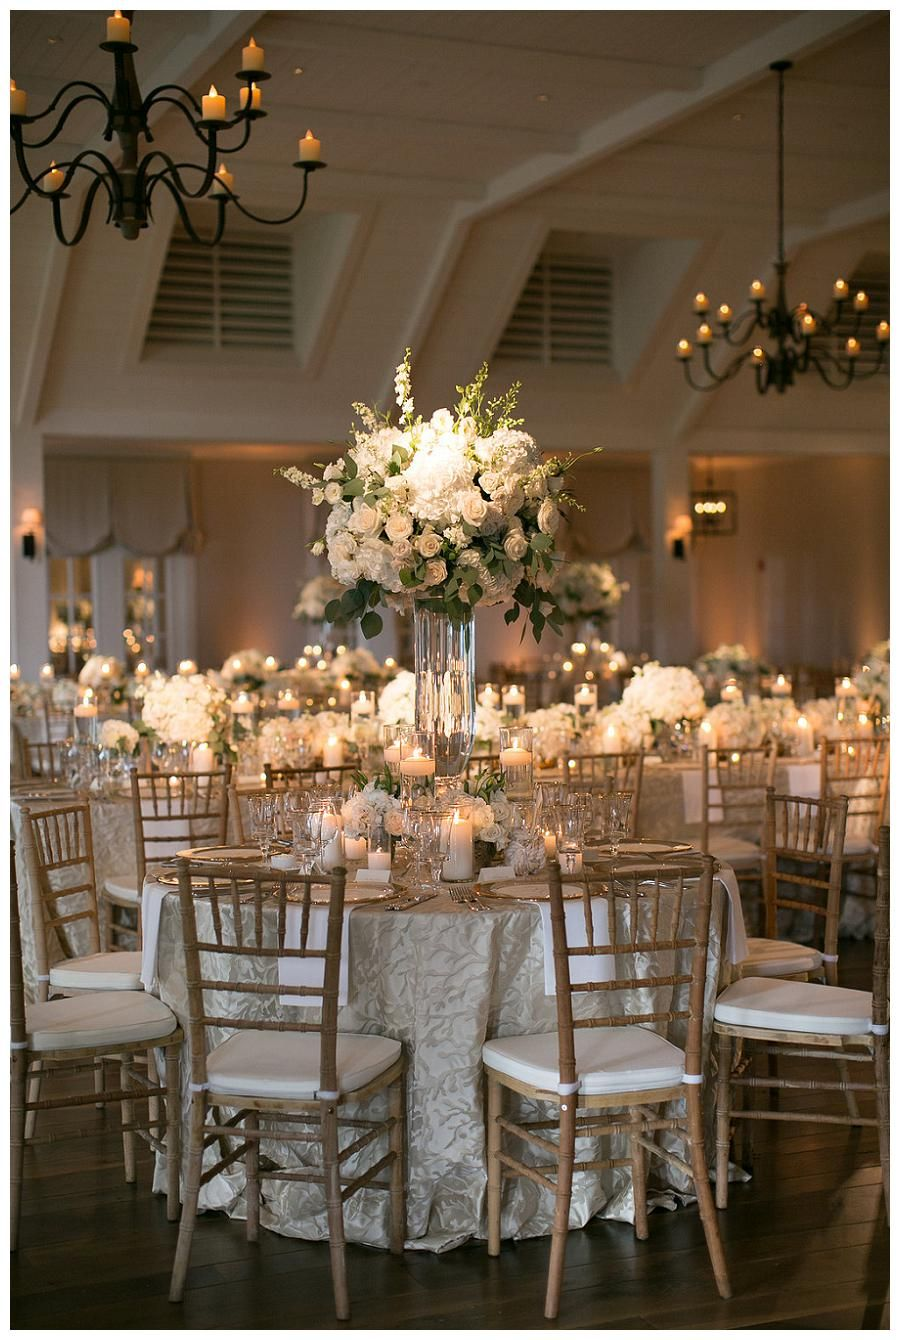 Black and white decor ideas for wedding